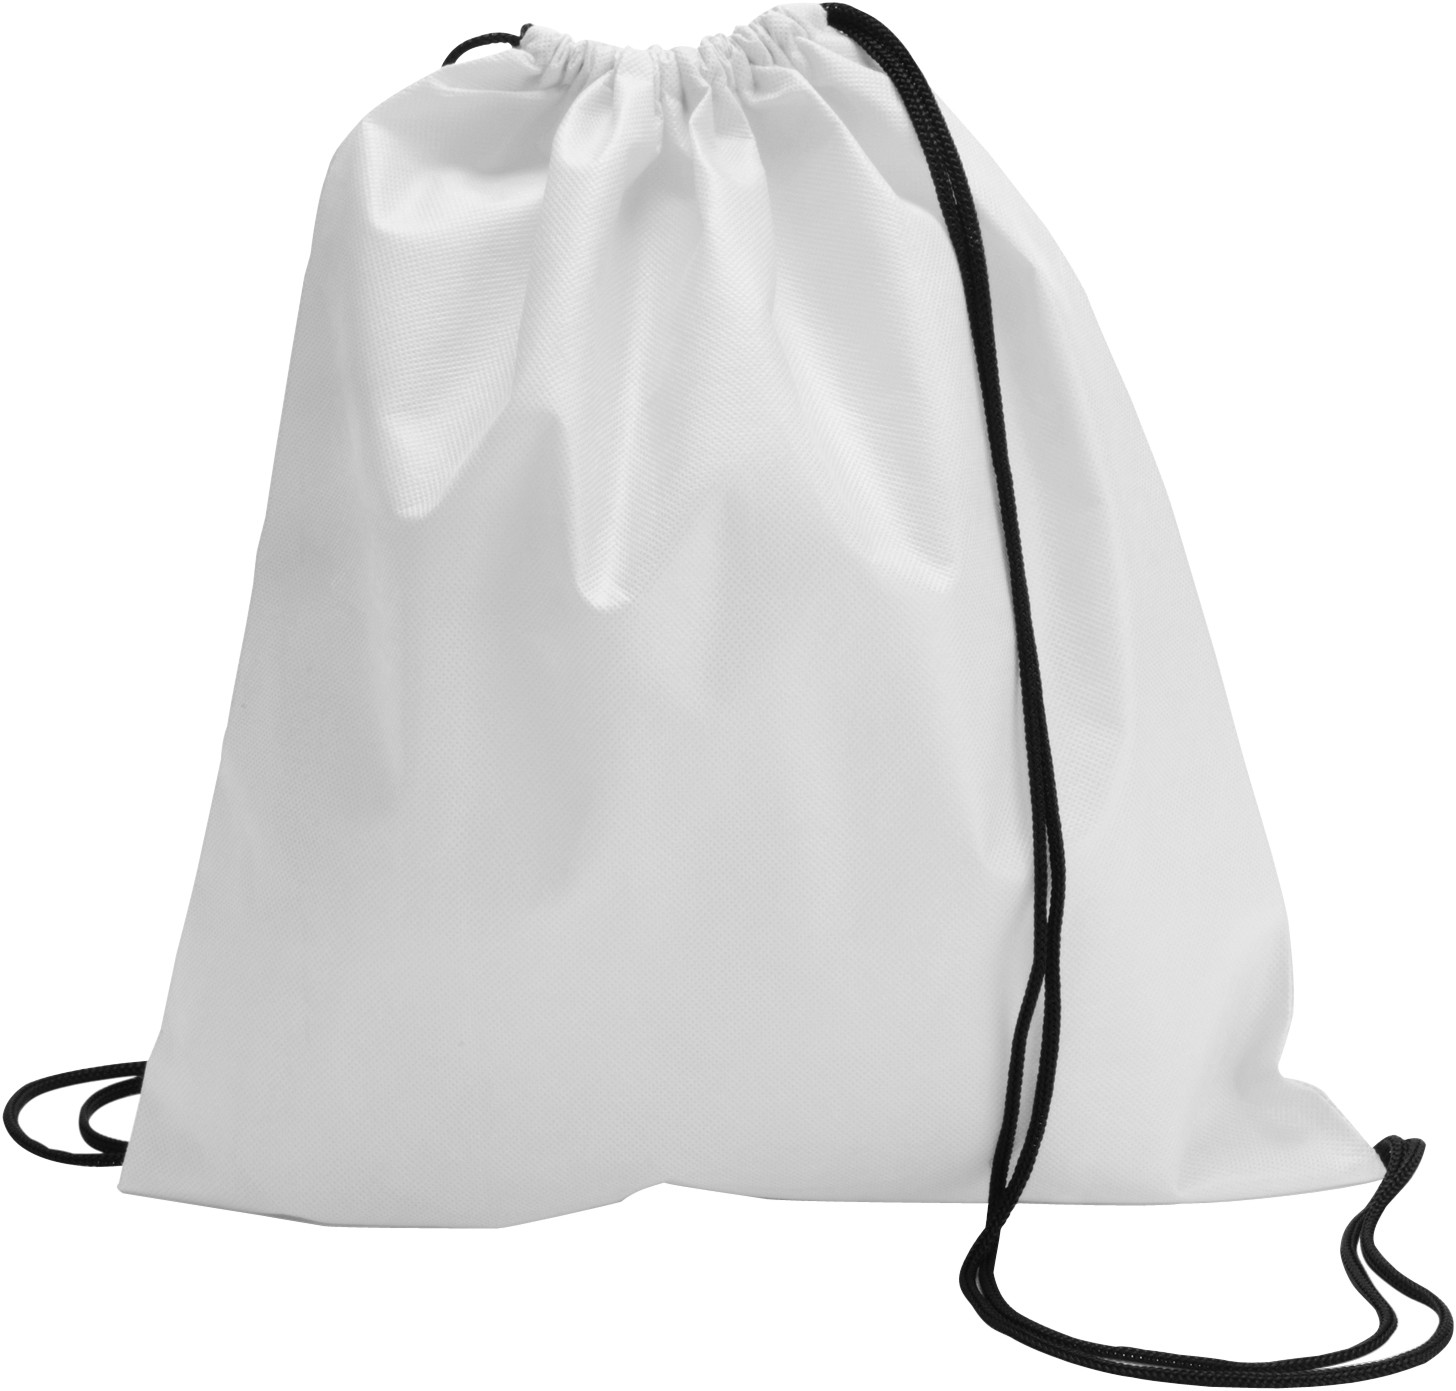 The drawstring makes these bags easy to close and keeps the contents from spilling out as you transport the full bag to the dumpster. Once the bag is closed, the drawstring forms handles that make your trash easy to carry.